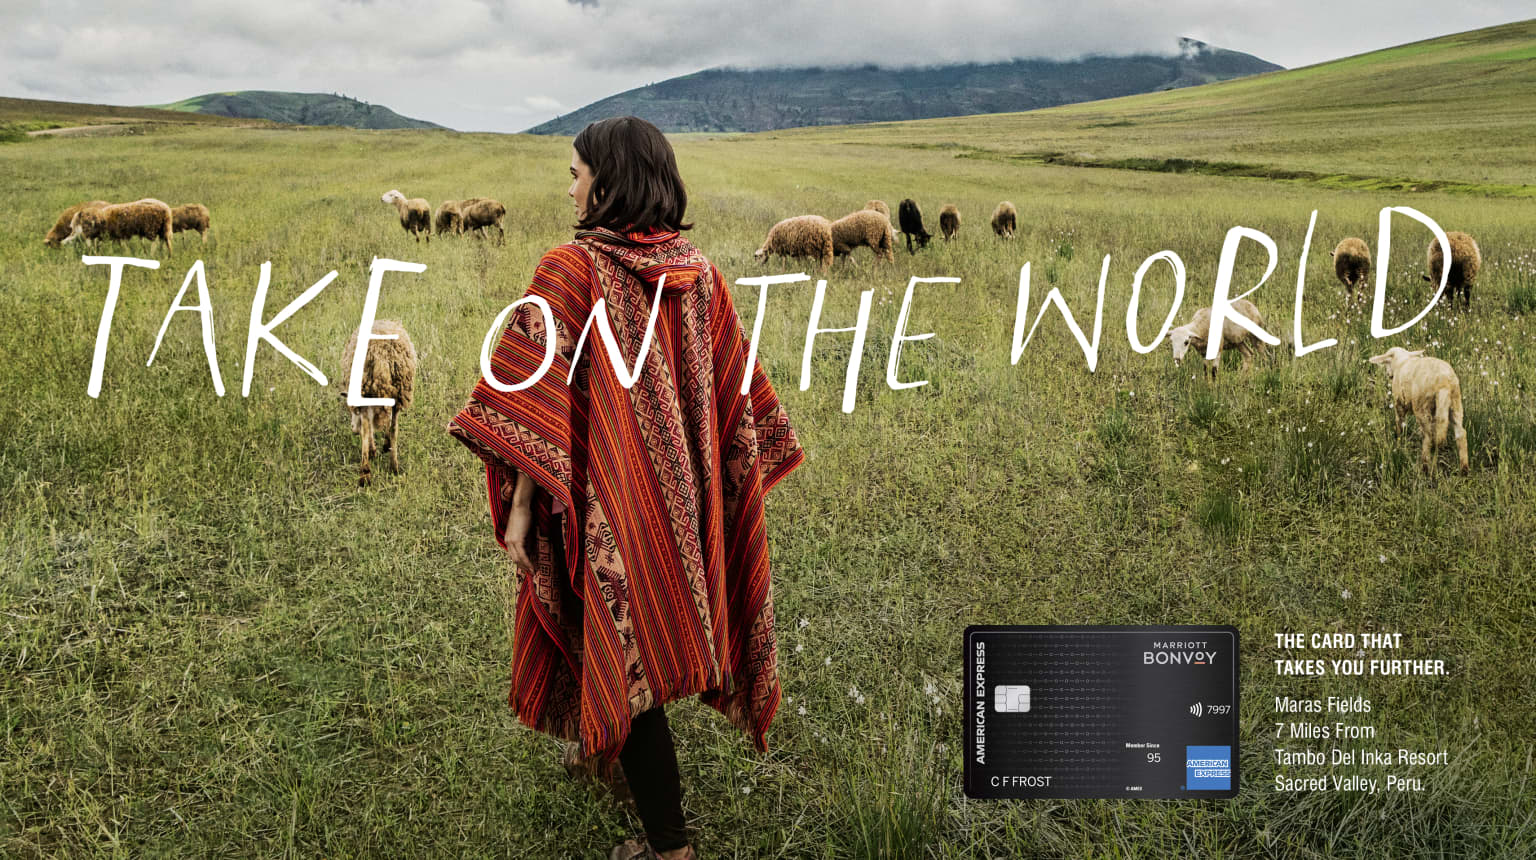 Amex. Take on The World.